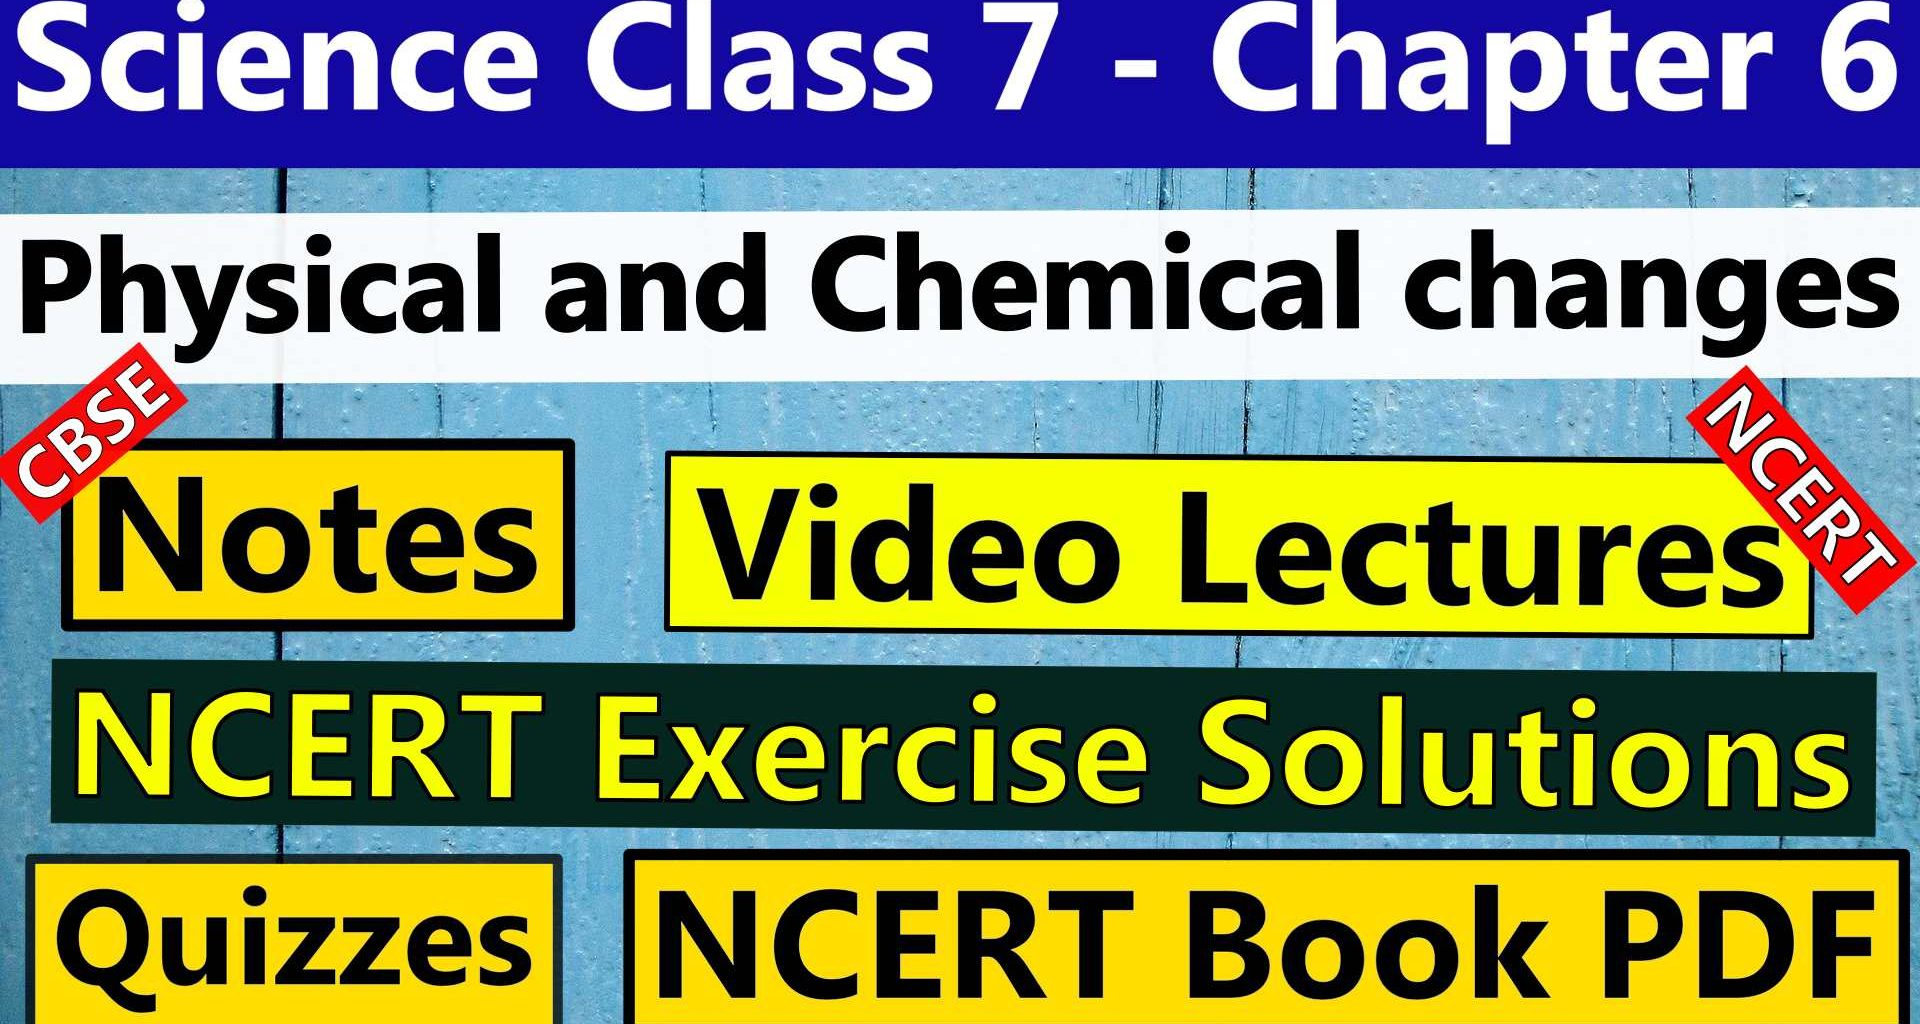 CBSE Science Class 7 - Chapter 6 - Physical and Chemical changes - Notes, Video Lecture, NCERT Exercise Solution, Quizzes, NCERT Book Chapter 6 PDF Download, or view